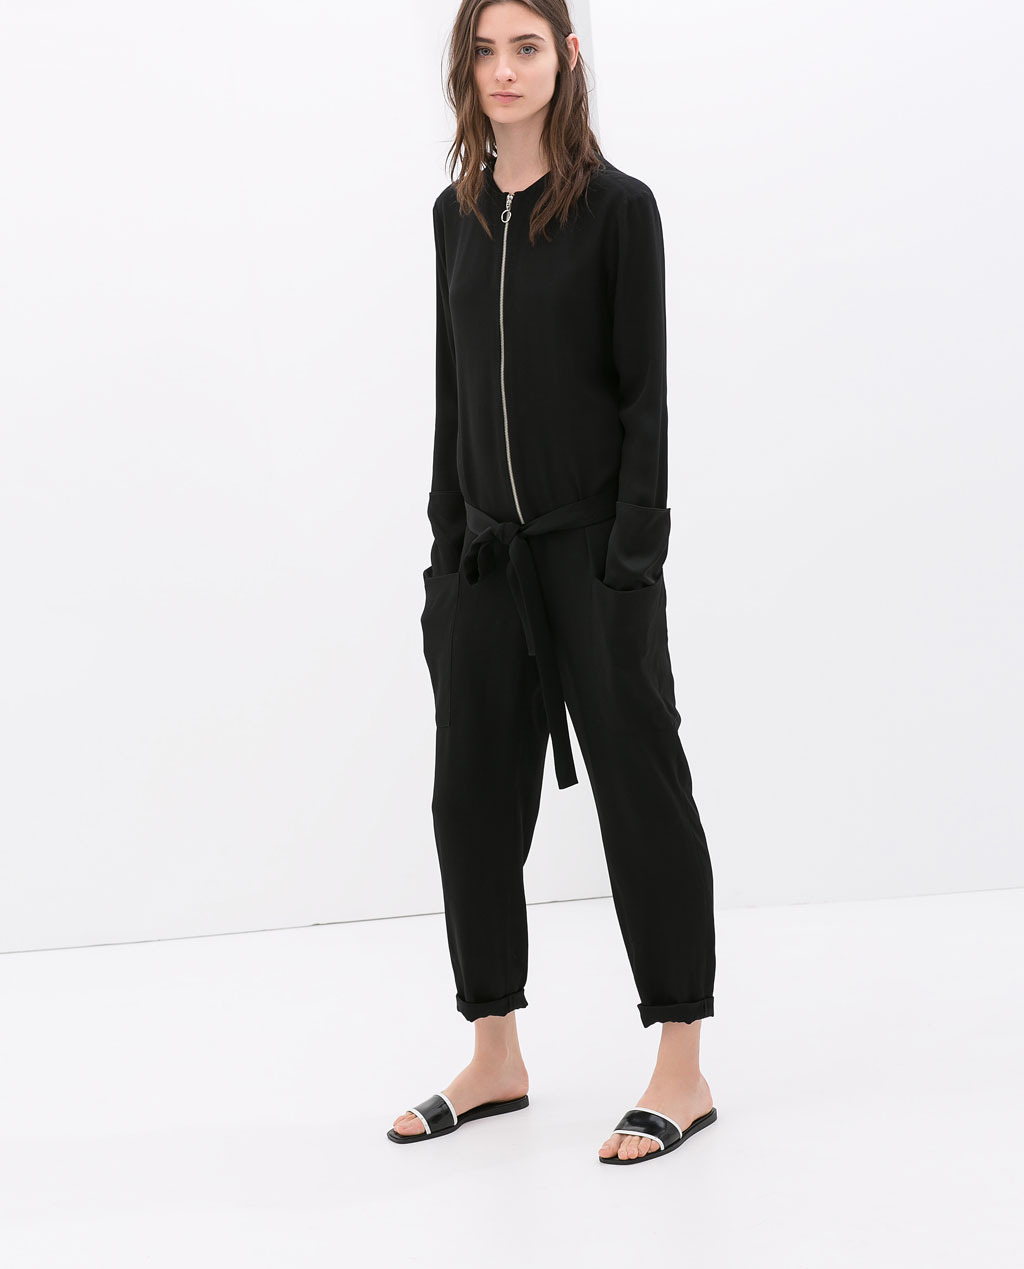 Studio Zip Jumpsuit - pattern: plain; waist detail: belted waist/tie at waist/drawstring; predominant colour: black; occasions: casual; length: ankle length; fit: body skimming; neckline: crew; sleeve length: long sleeve; sleeve style: standard; texture group: silky - light; style: jumpsuit; pattern type: fabric; fibres: viscose/rayon - mix; season: s/s 2014